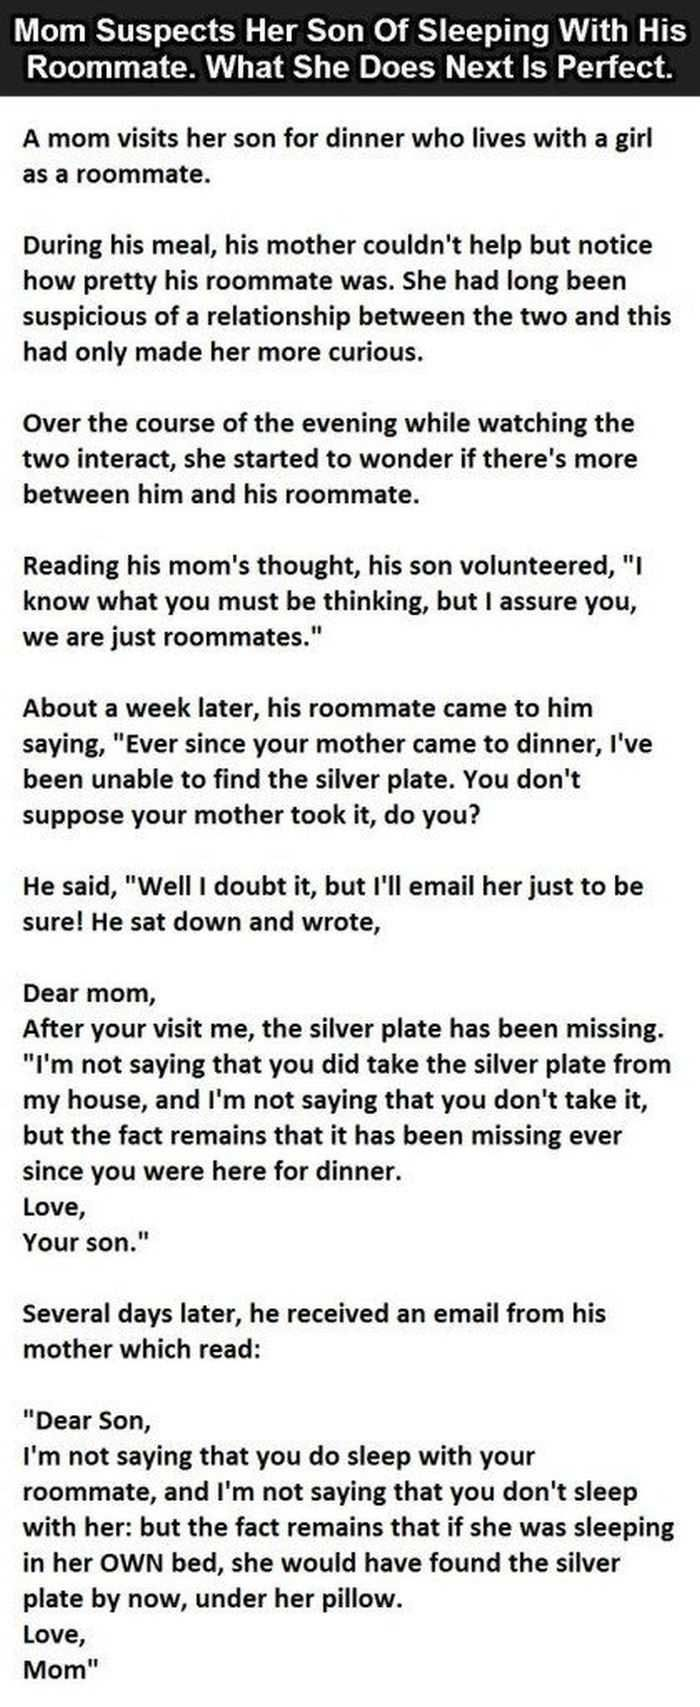 Latest Funny Stories 15 Really Funny Short Stories 15 Really Funny Short Stories 5